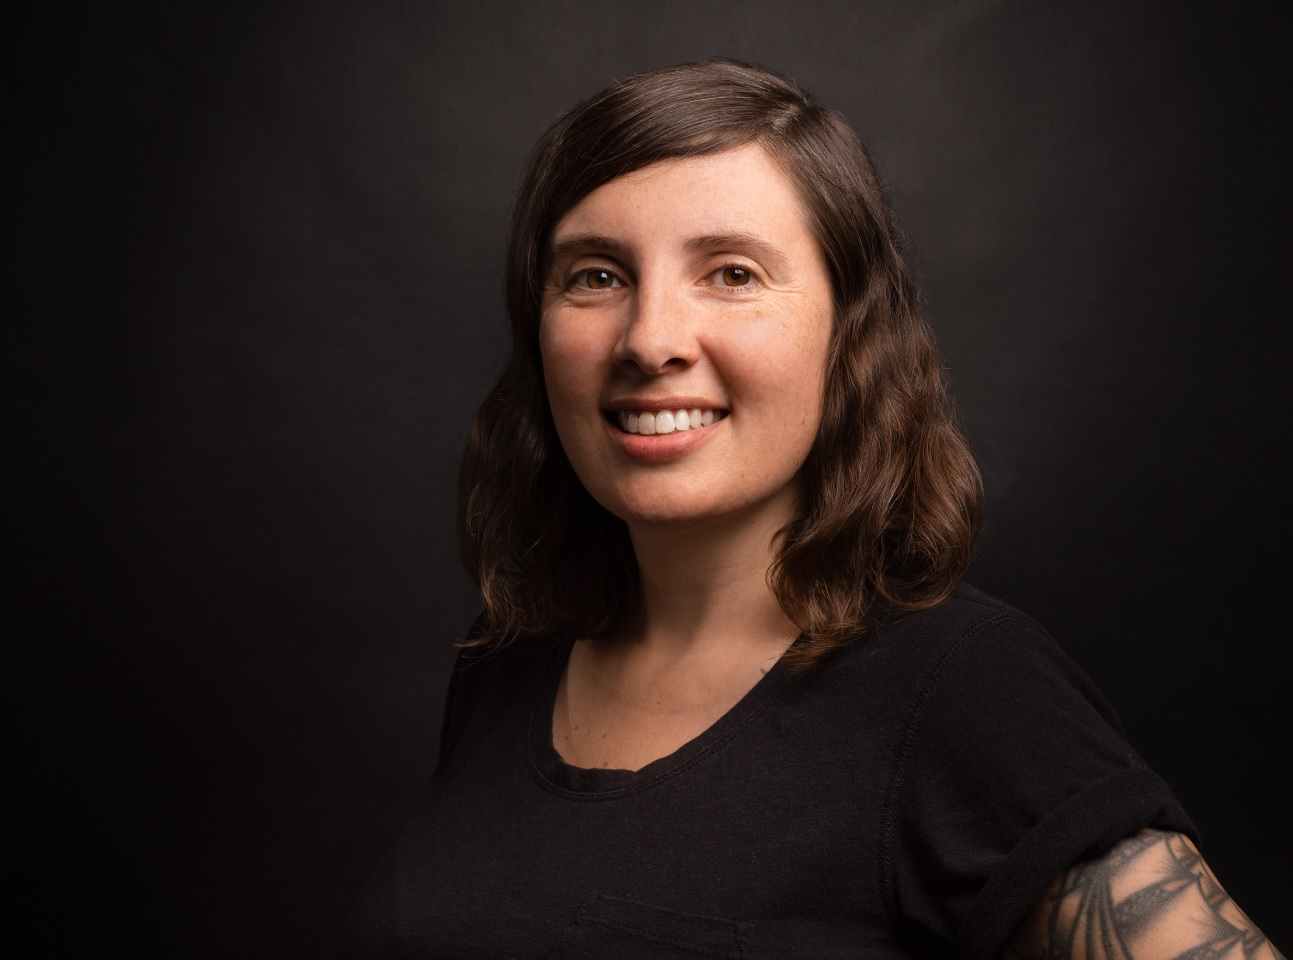 Gina Myers is the author of two full-length poetry collections,  A Model Year  (2009) and  Hold It Down  (2013), as well as several chapbooks. In Fall 2020, Barrelhouse will publish her third full-length collection,  Some of the Times.  In addition to poetry, she has published numerous essays, reviews, and articles for a variety of publications, including  Hyperallergic, Frontier Psychiatrist, Fanzine, The Rumpus,  and  The Poetry Project Newsletter , among other places. Originally from Saginaw, MI, she now lives in Philadelphia, PA, where she works as a web content writer, co-edits  the tiny  with Gabriella Torres, and runs the Accidental Player reading series and small press.